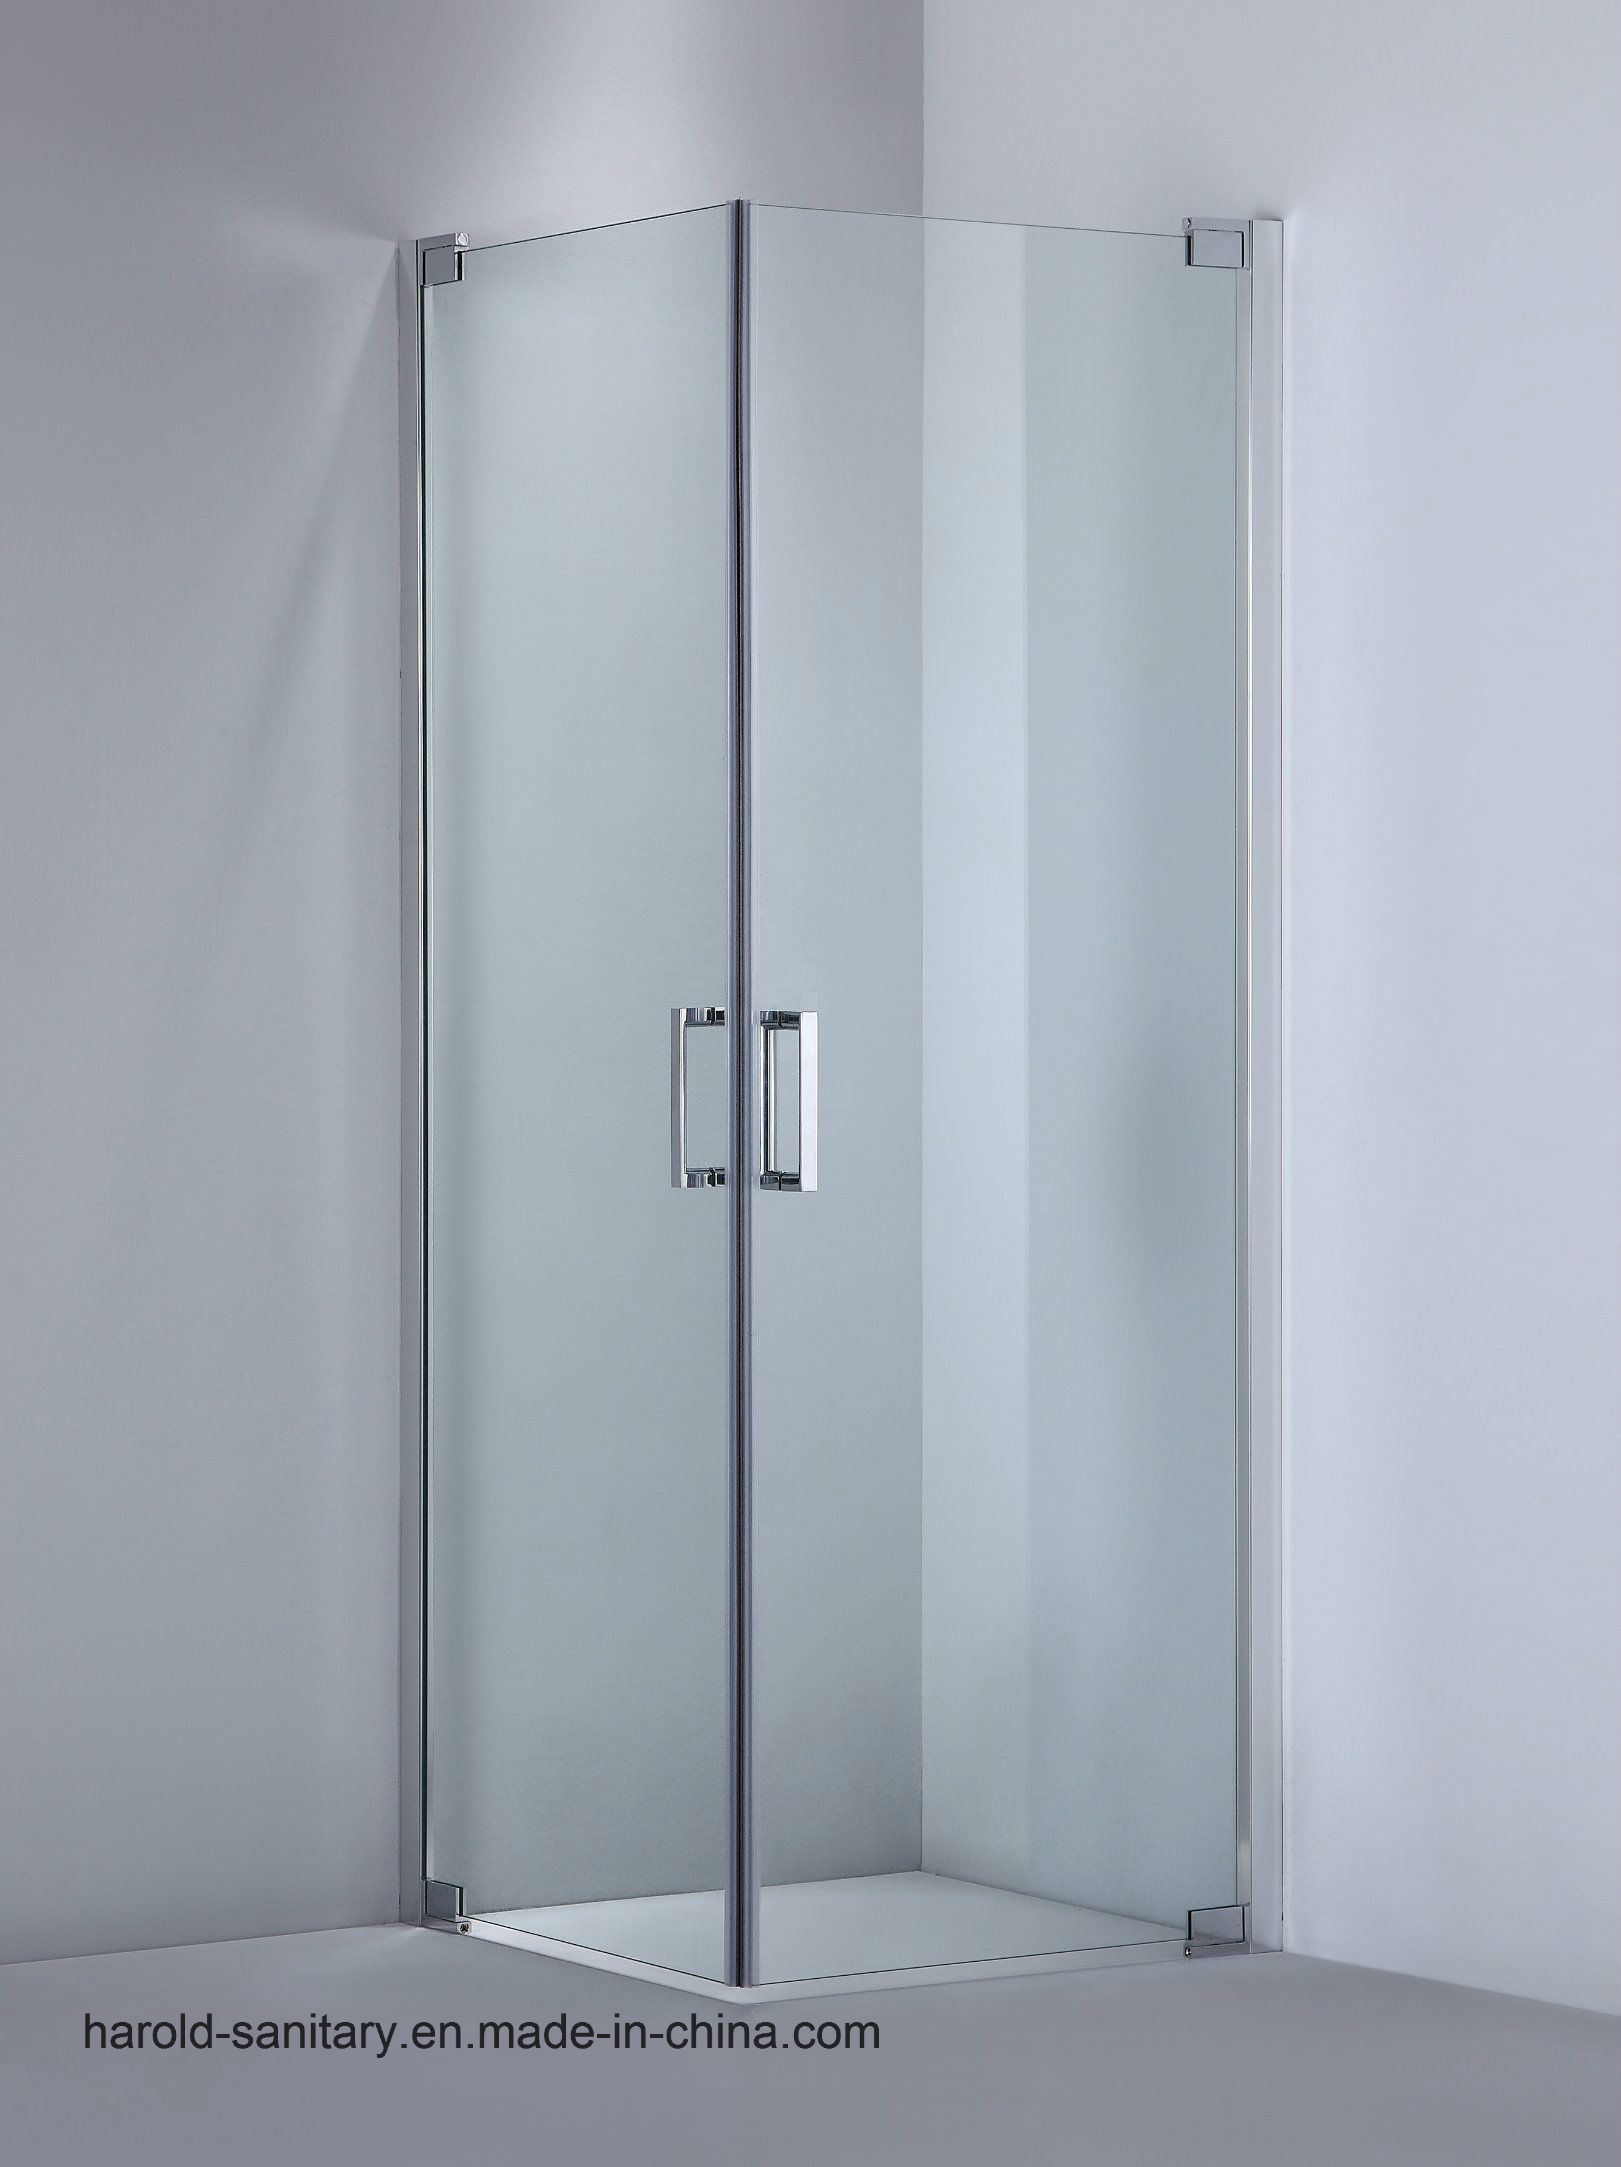 Hot Item Frameless Glass Shower Enclosure 2 Doors Swing